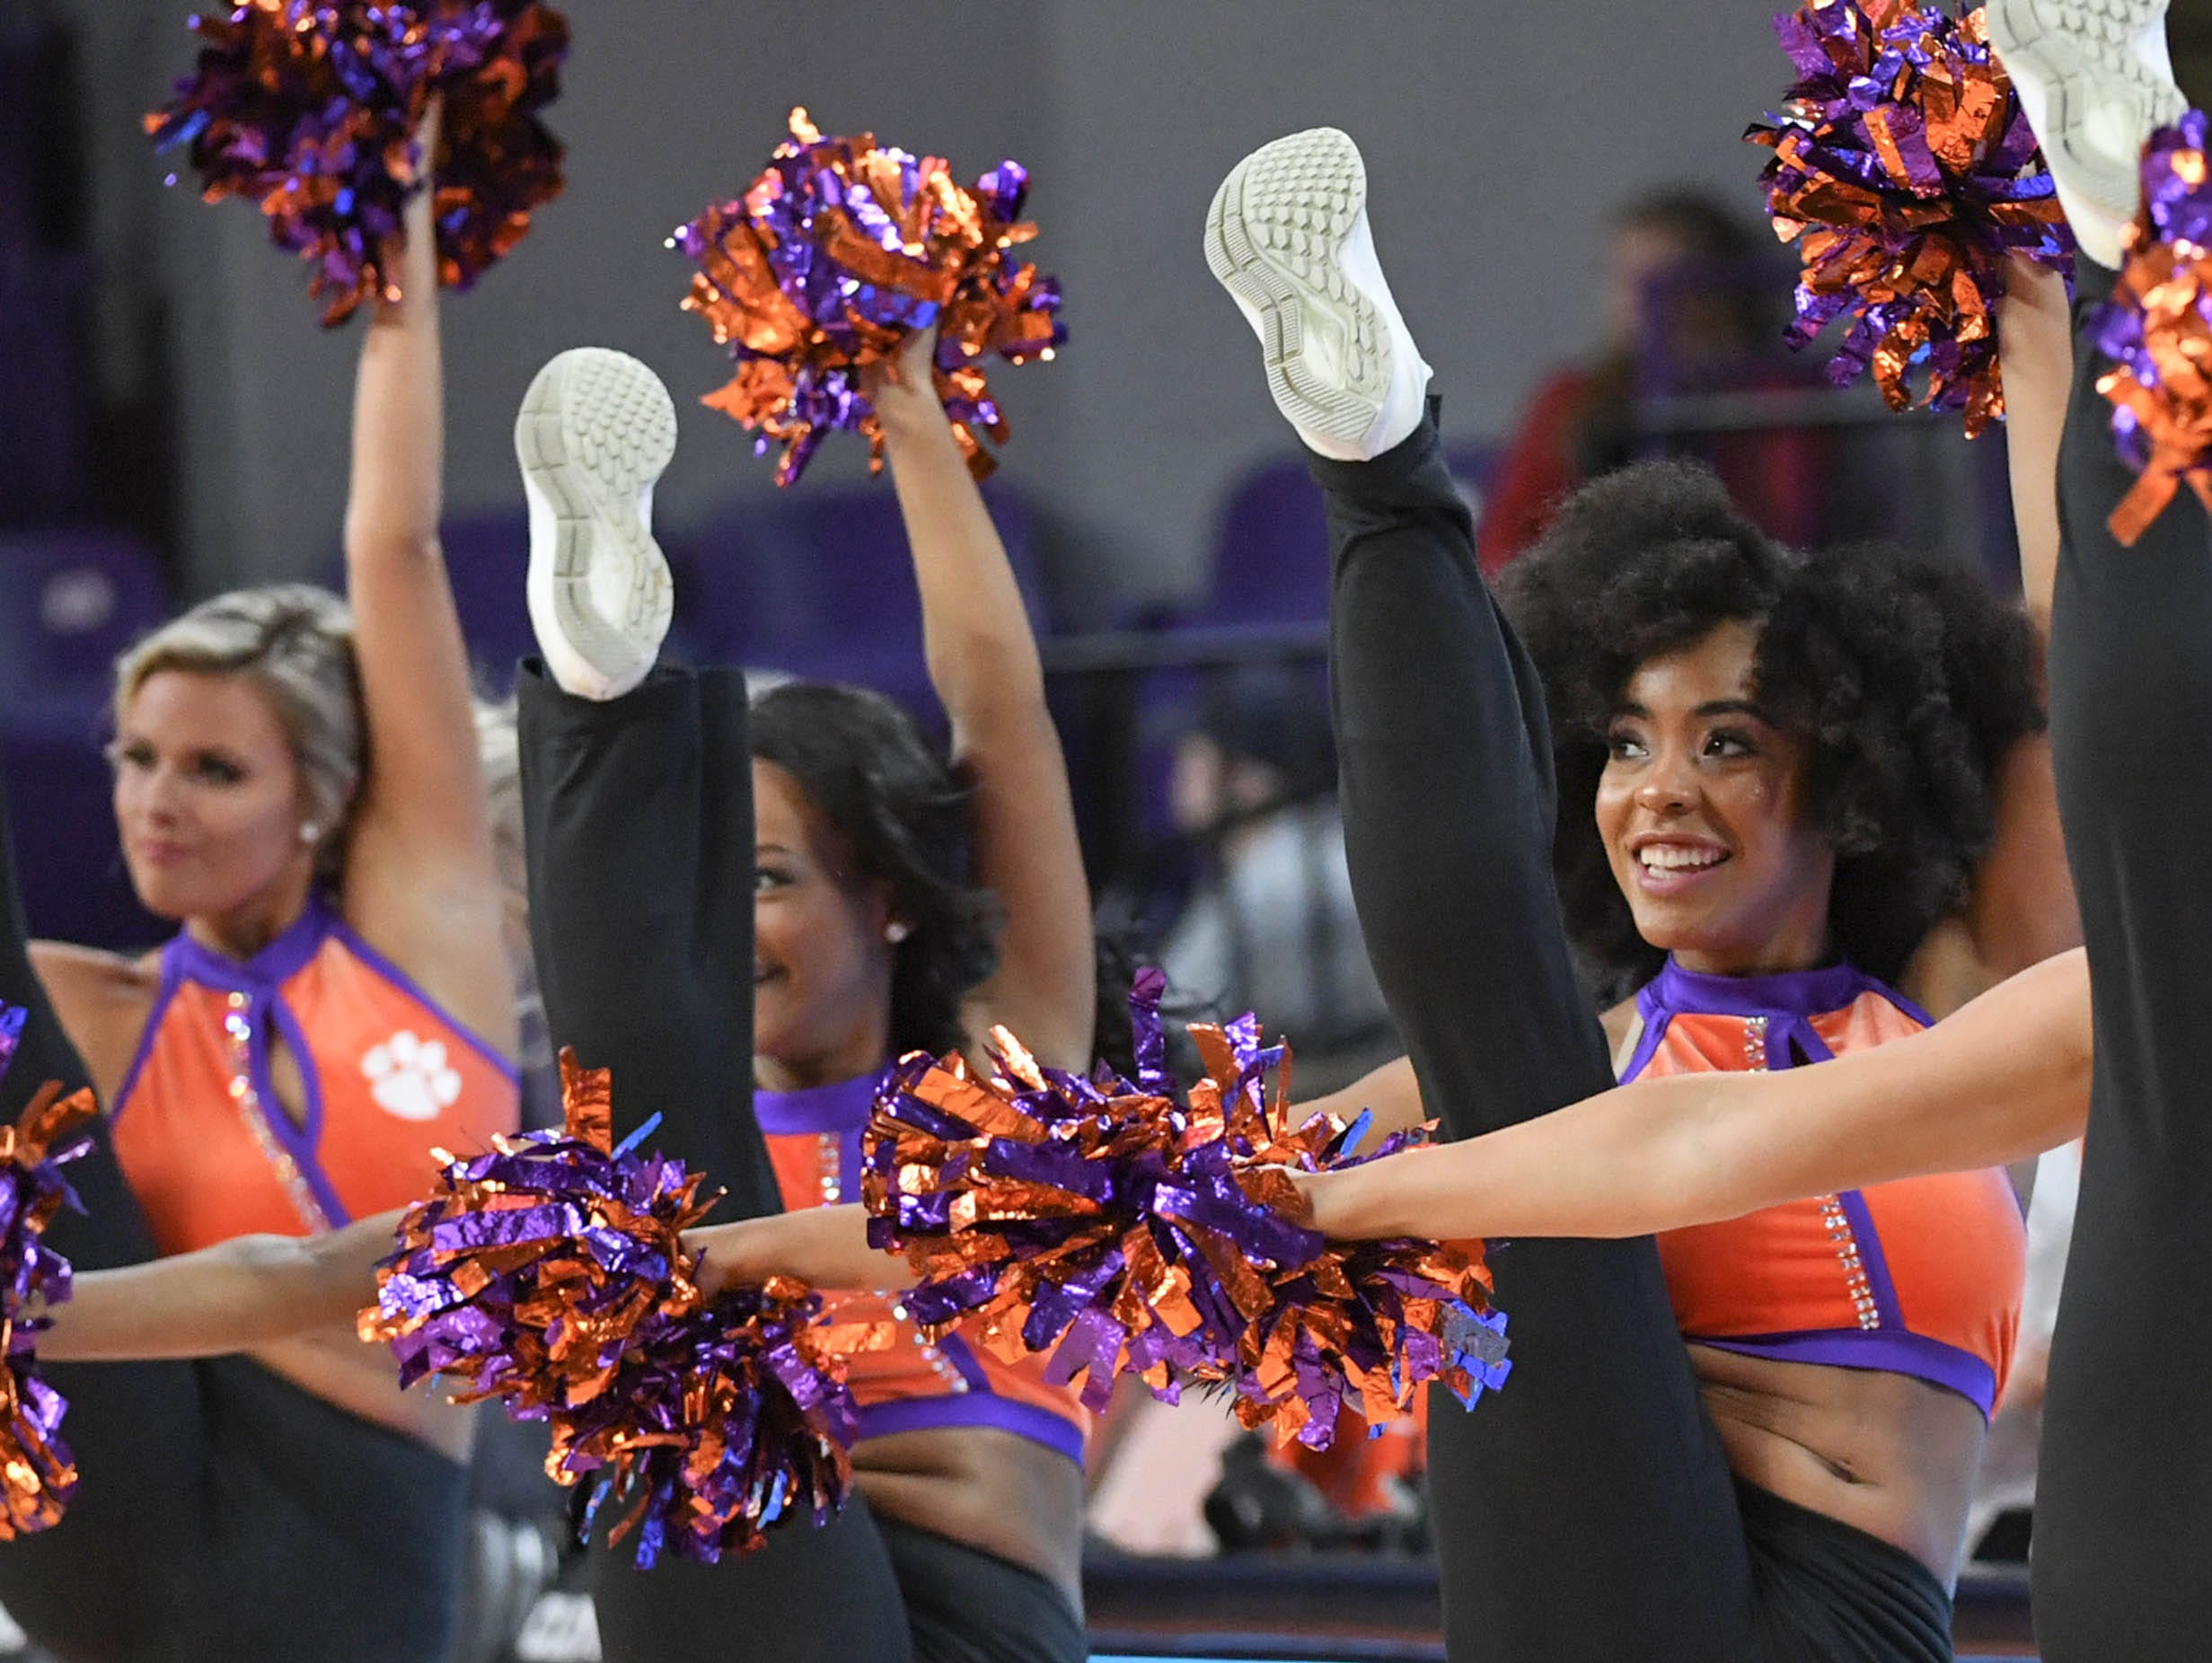 Clemson Rally Cats dance at a break during the first half in Littlejohn Coliseum in Clemson Saturday, March 9, 2019.